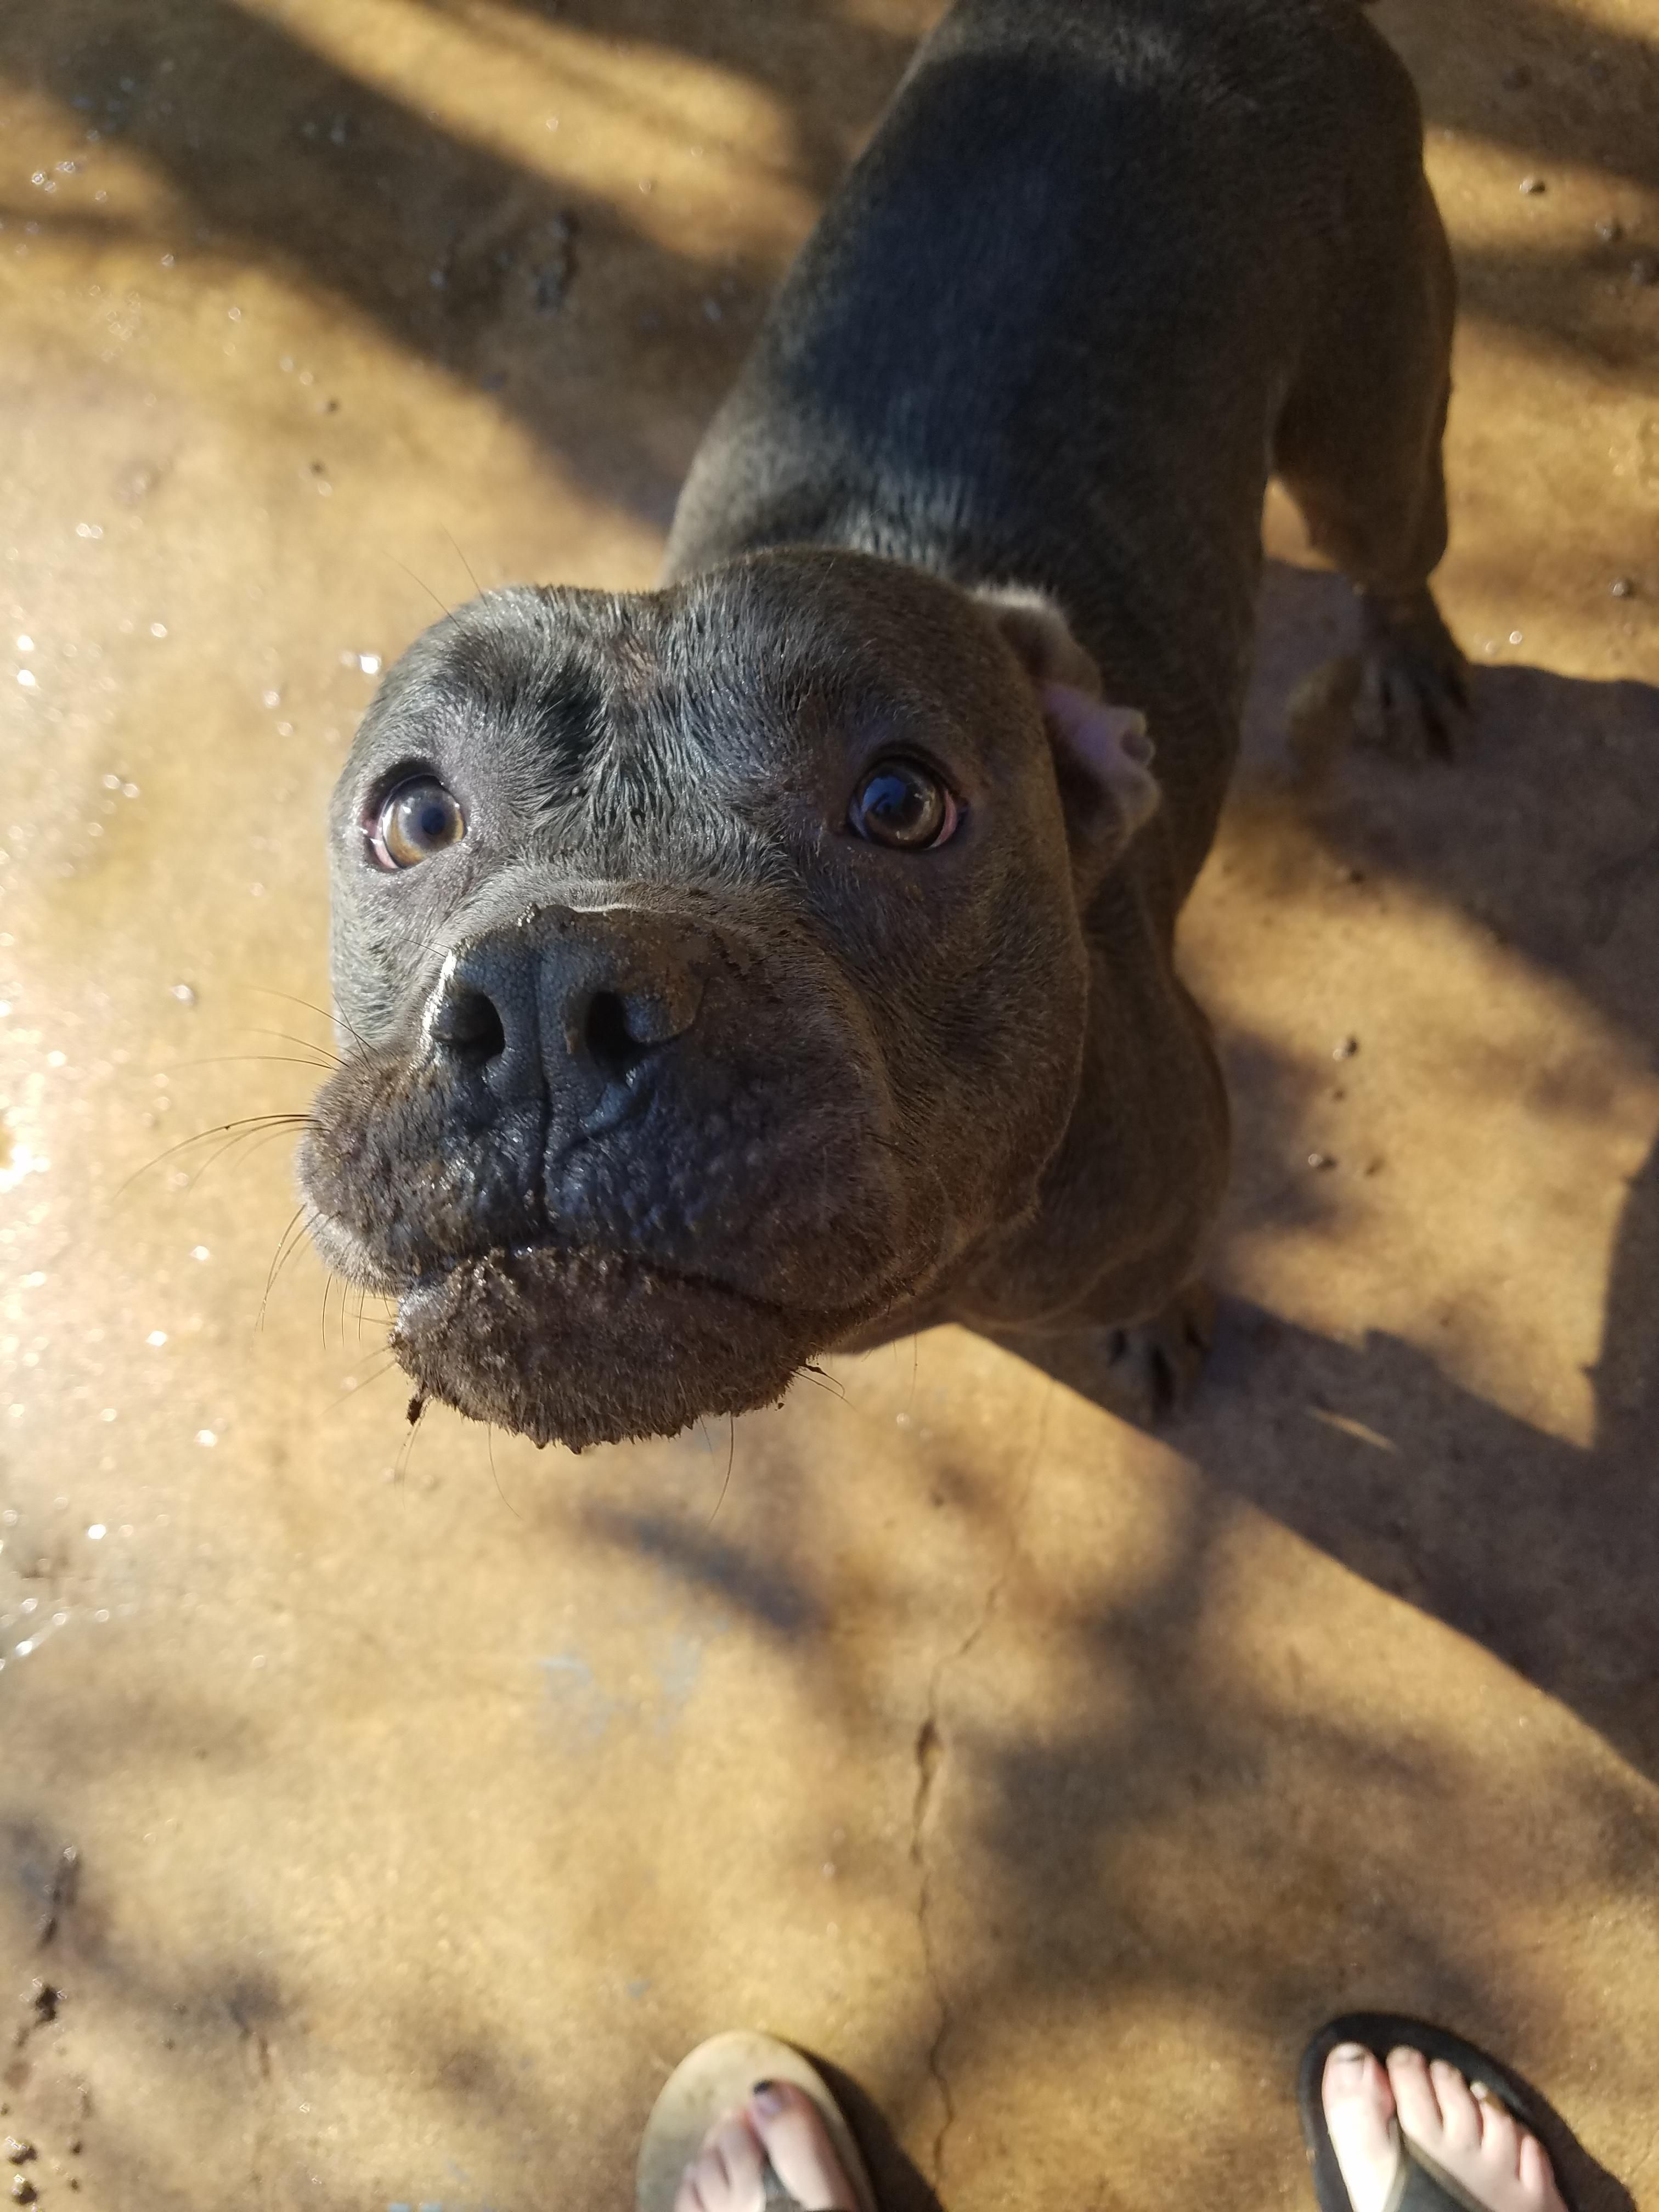 Lubbock Tx Doofy Is An Adoptable Dog Pit Bull Terrier